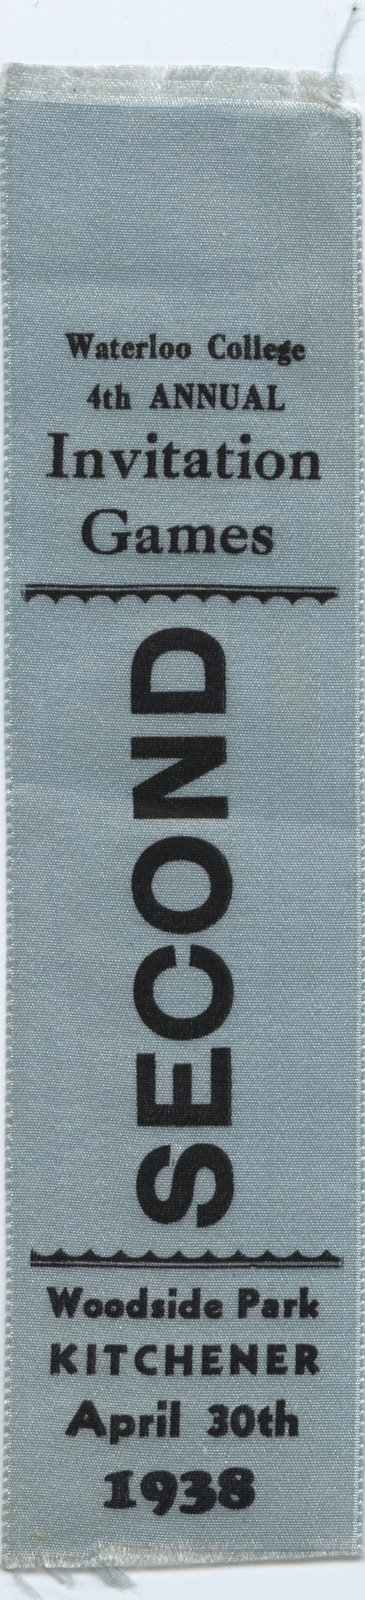 Second place ribbon, 1938 Waterloo College Invitation Games